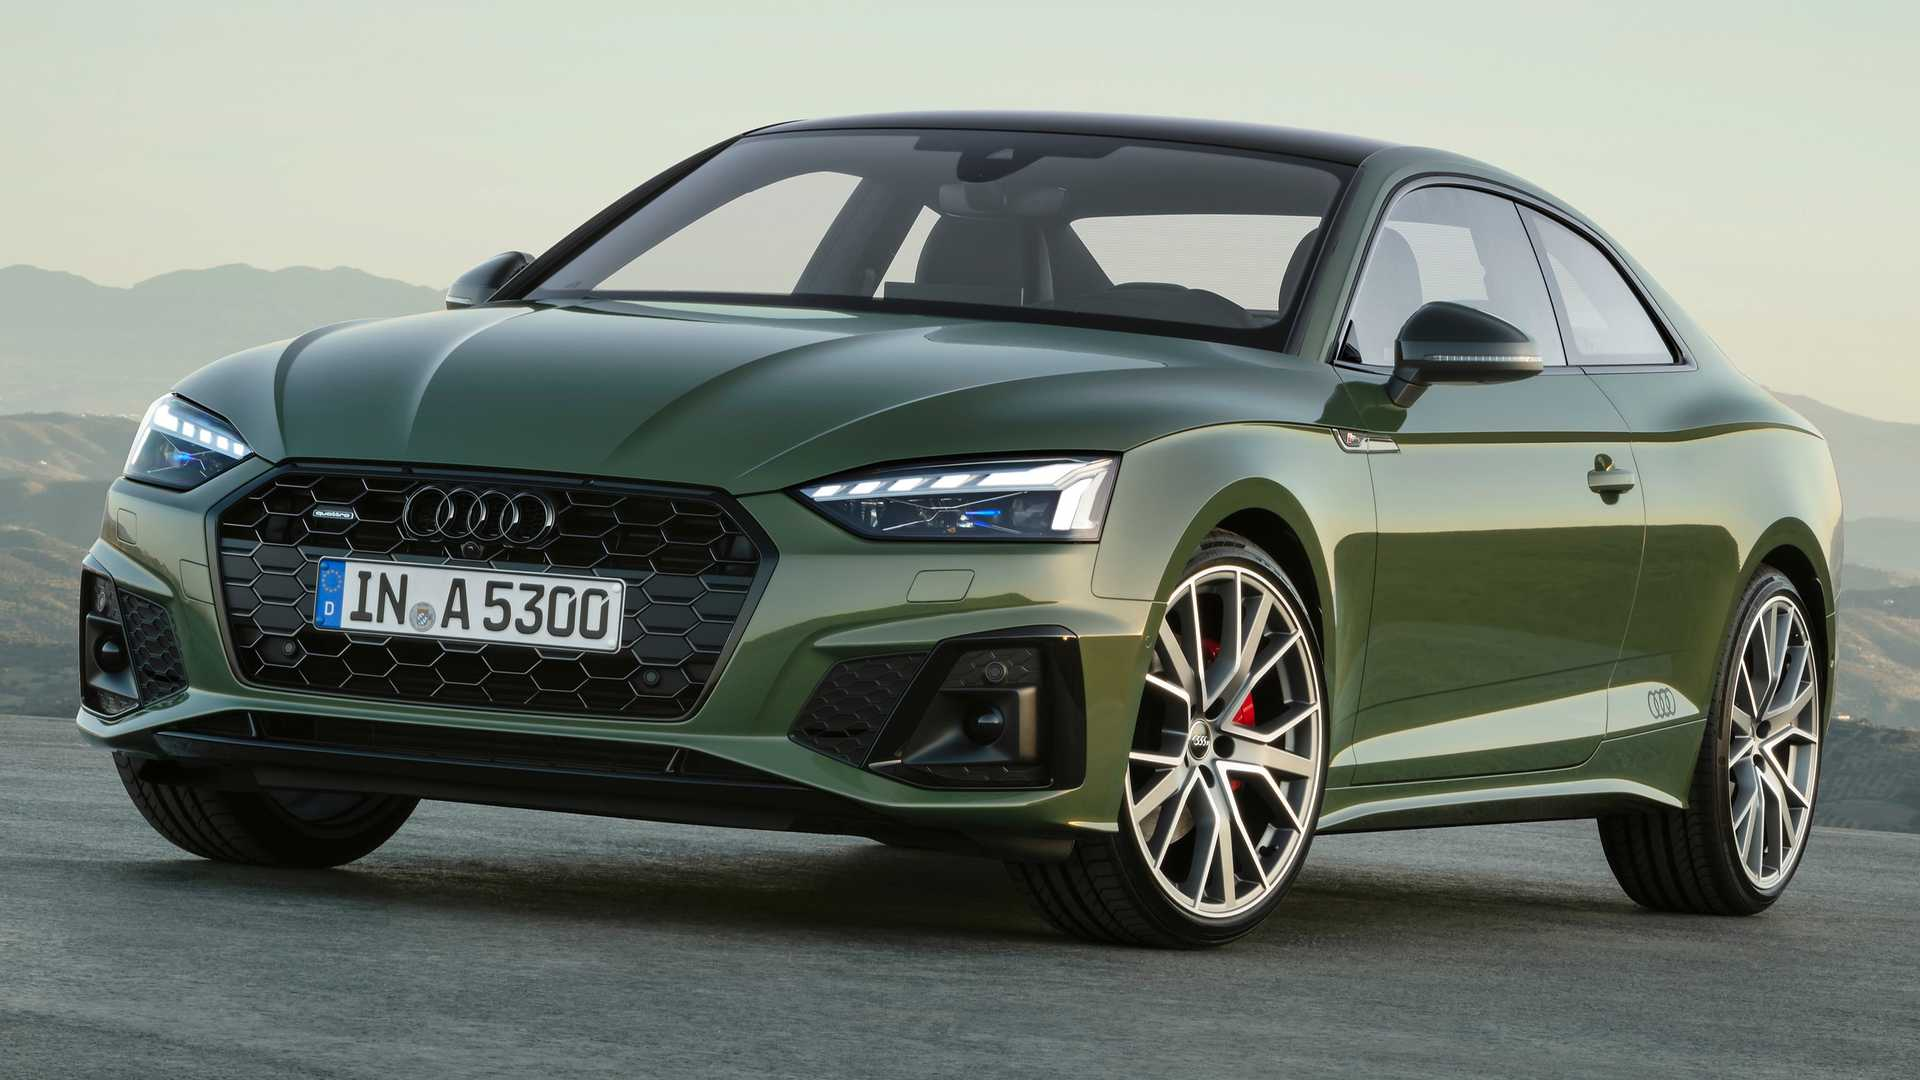 46 All New 2020 Audi S5 Picture